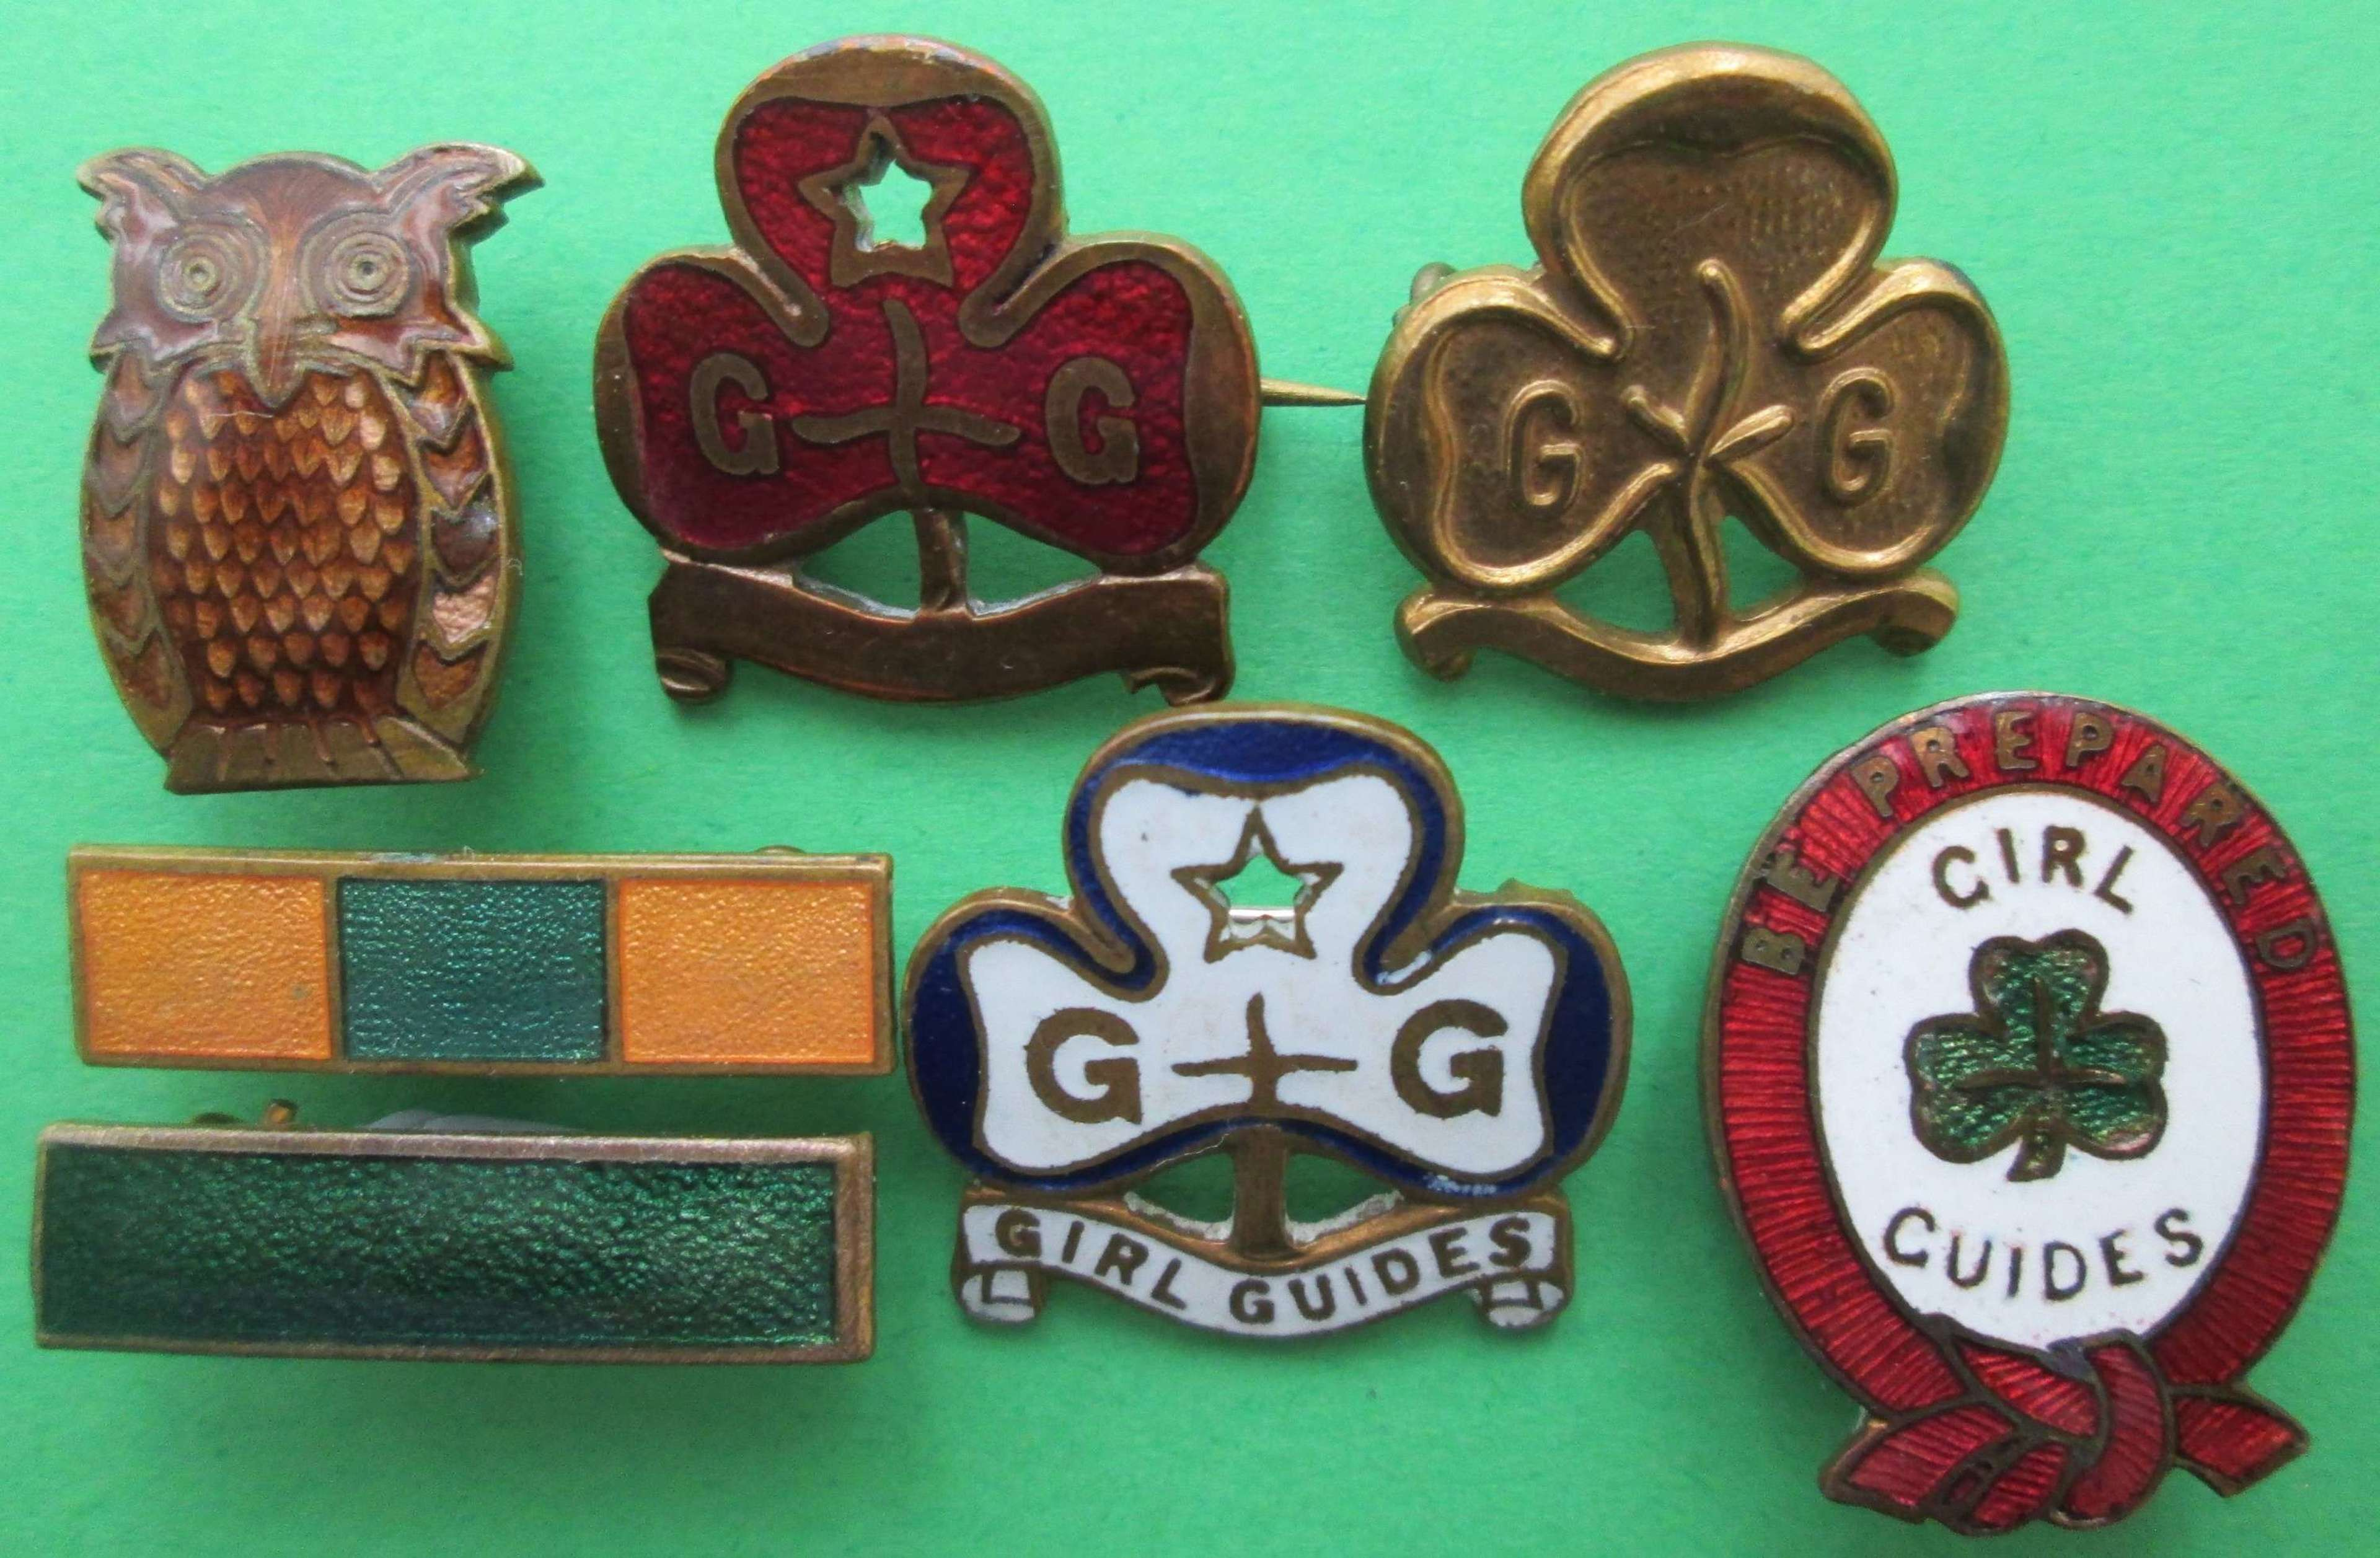 A COLLECTION OF GUIDE BADGES